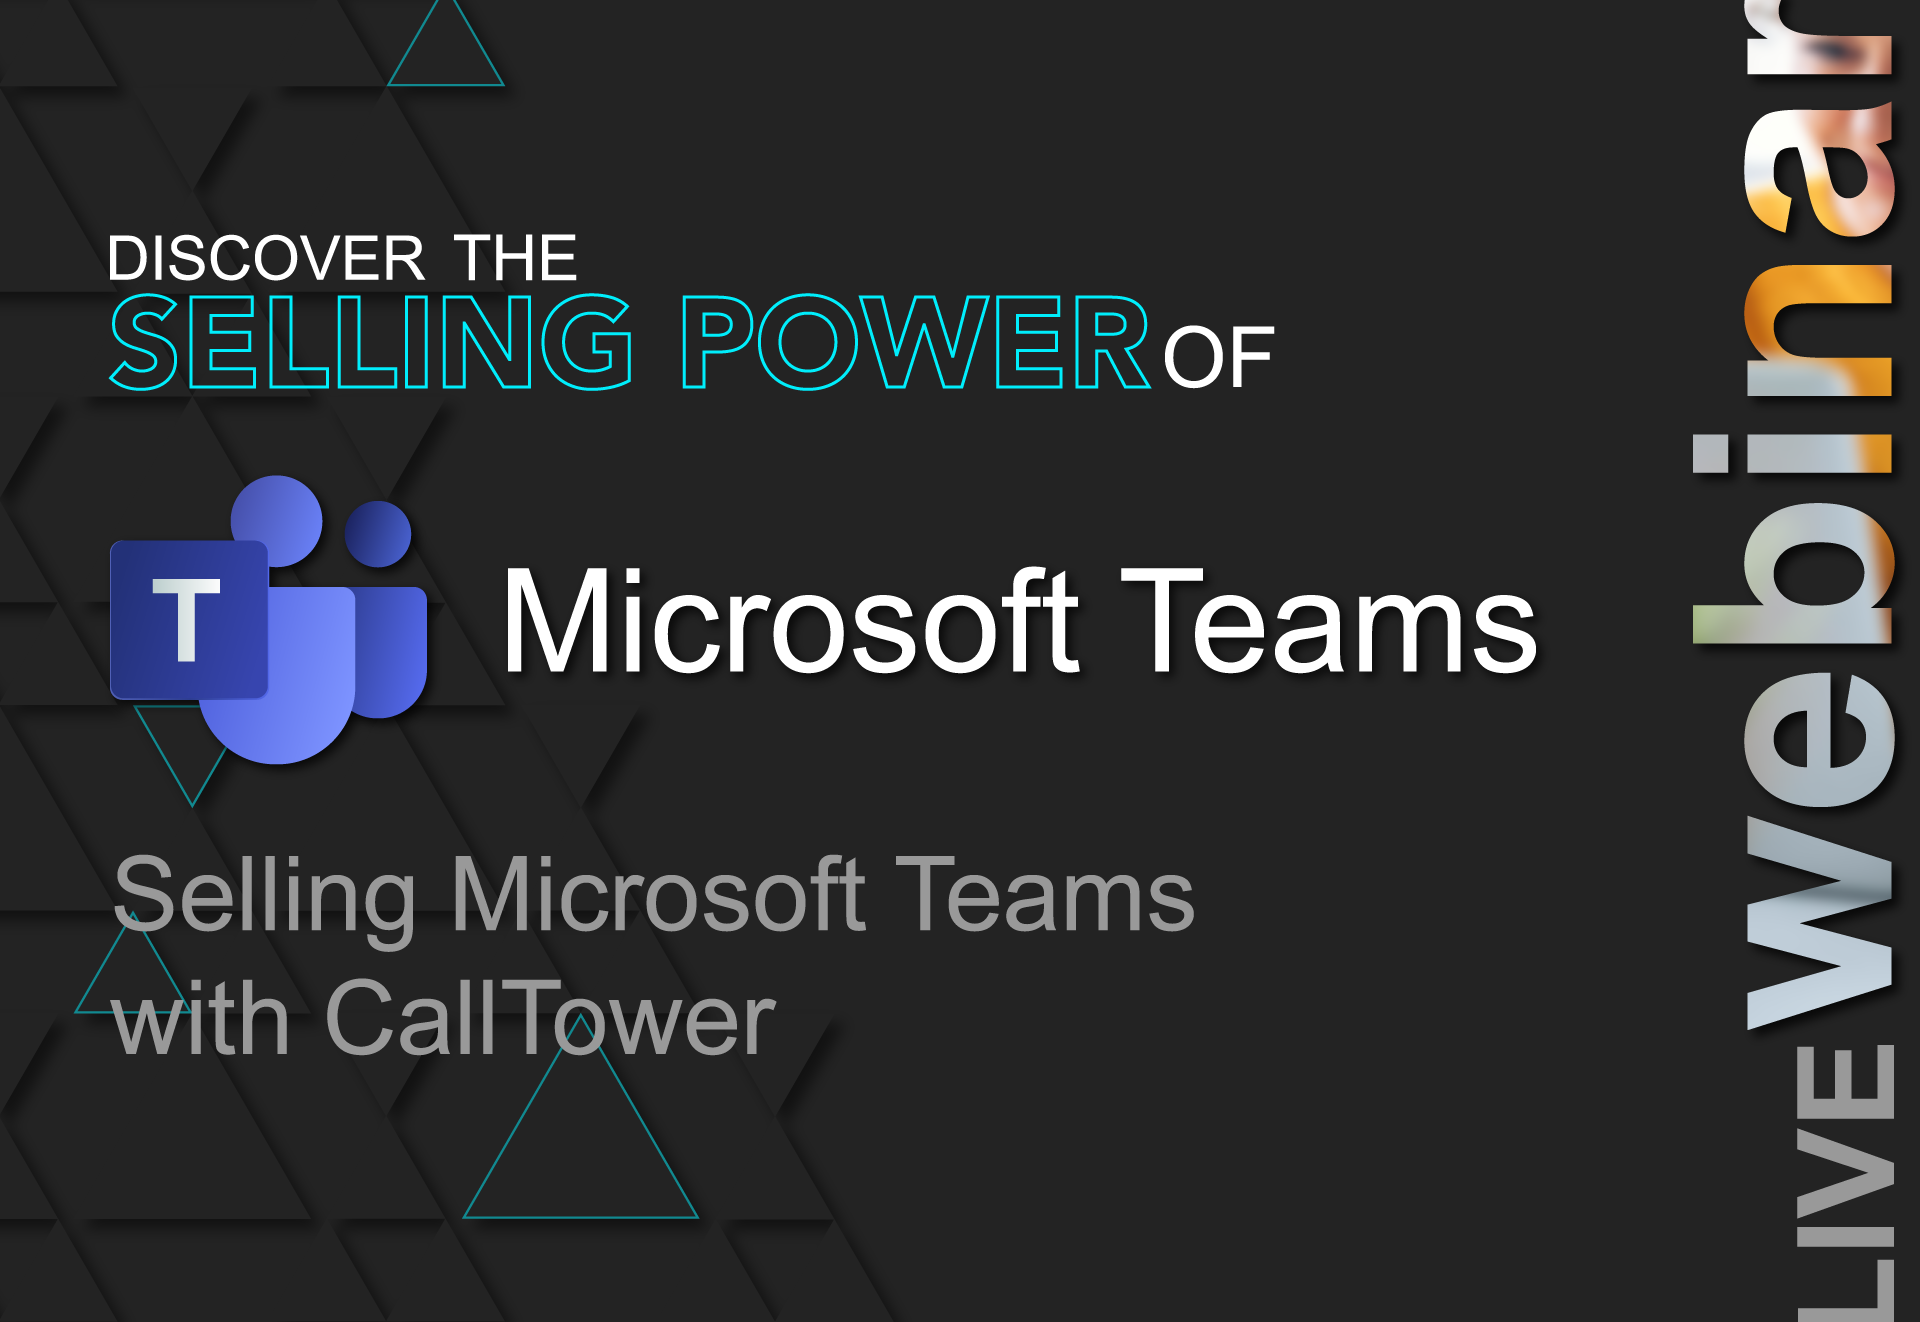 Discover the Selling Power of Microsoft Teams